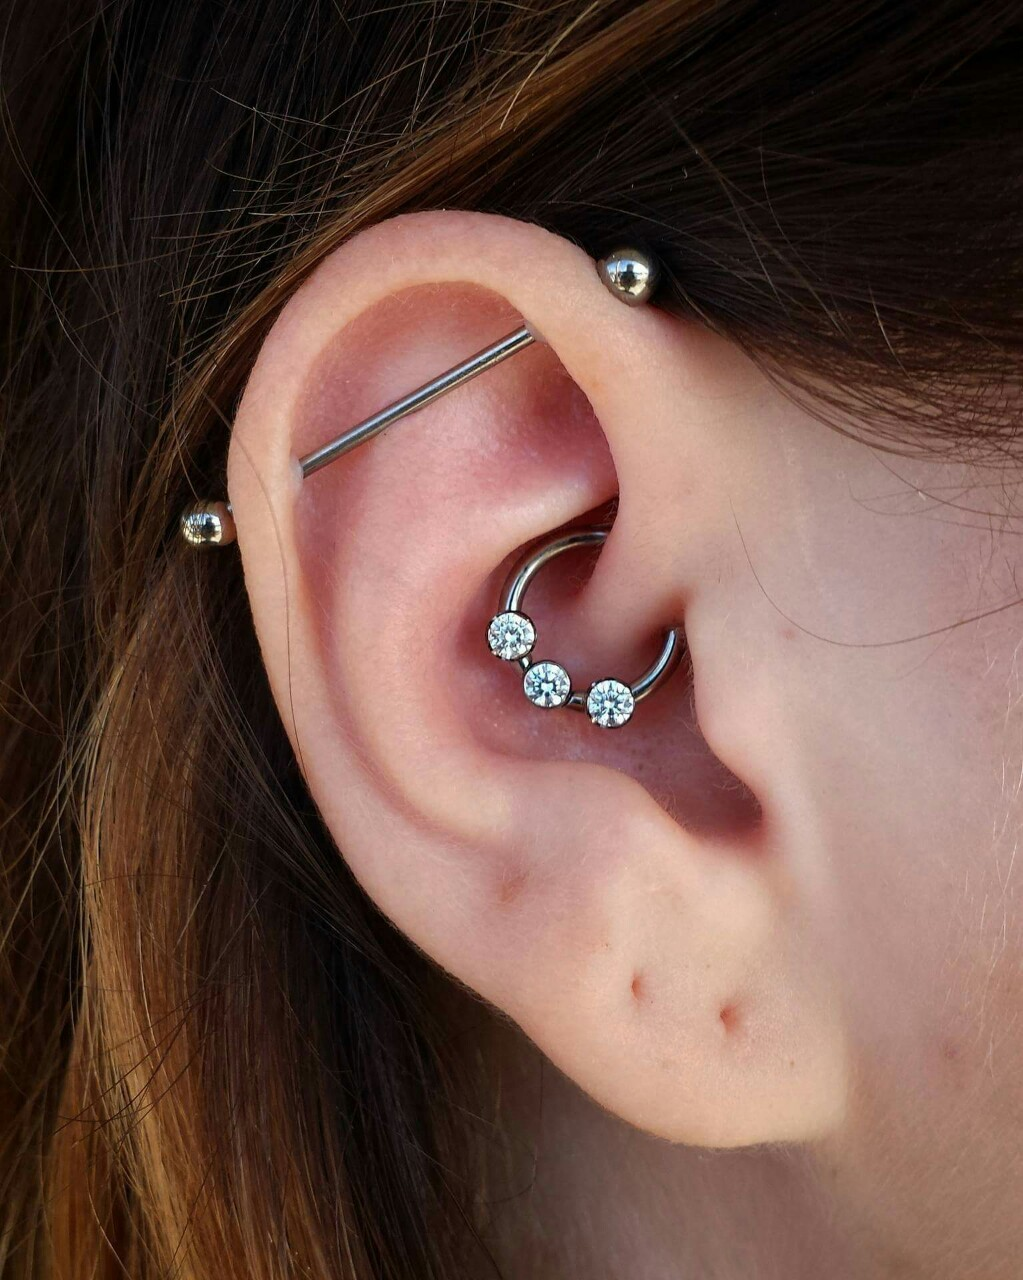 The Ultimate Guide On Industrial Piercings With Amazing